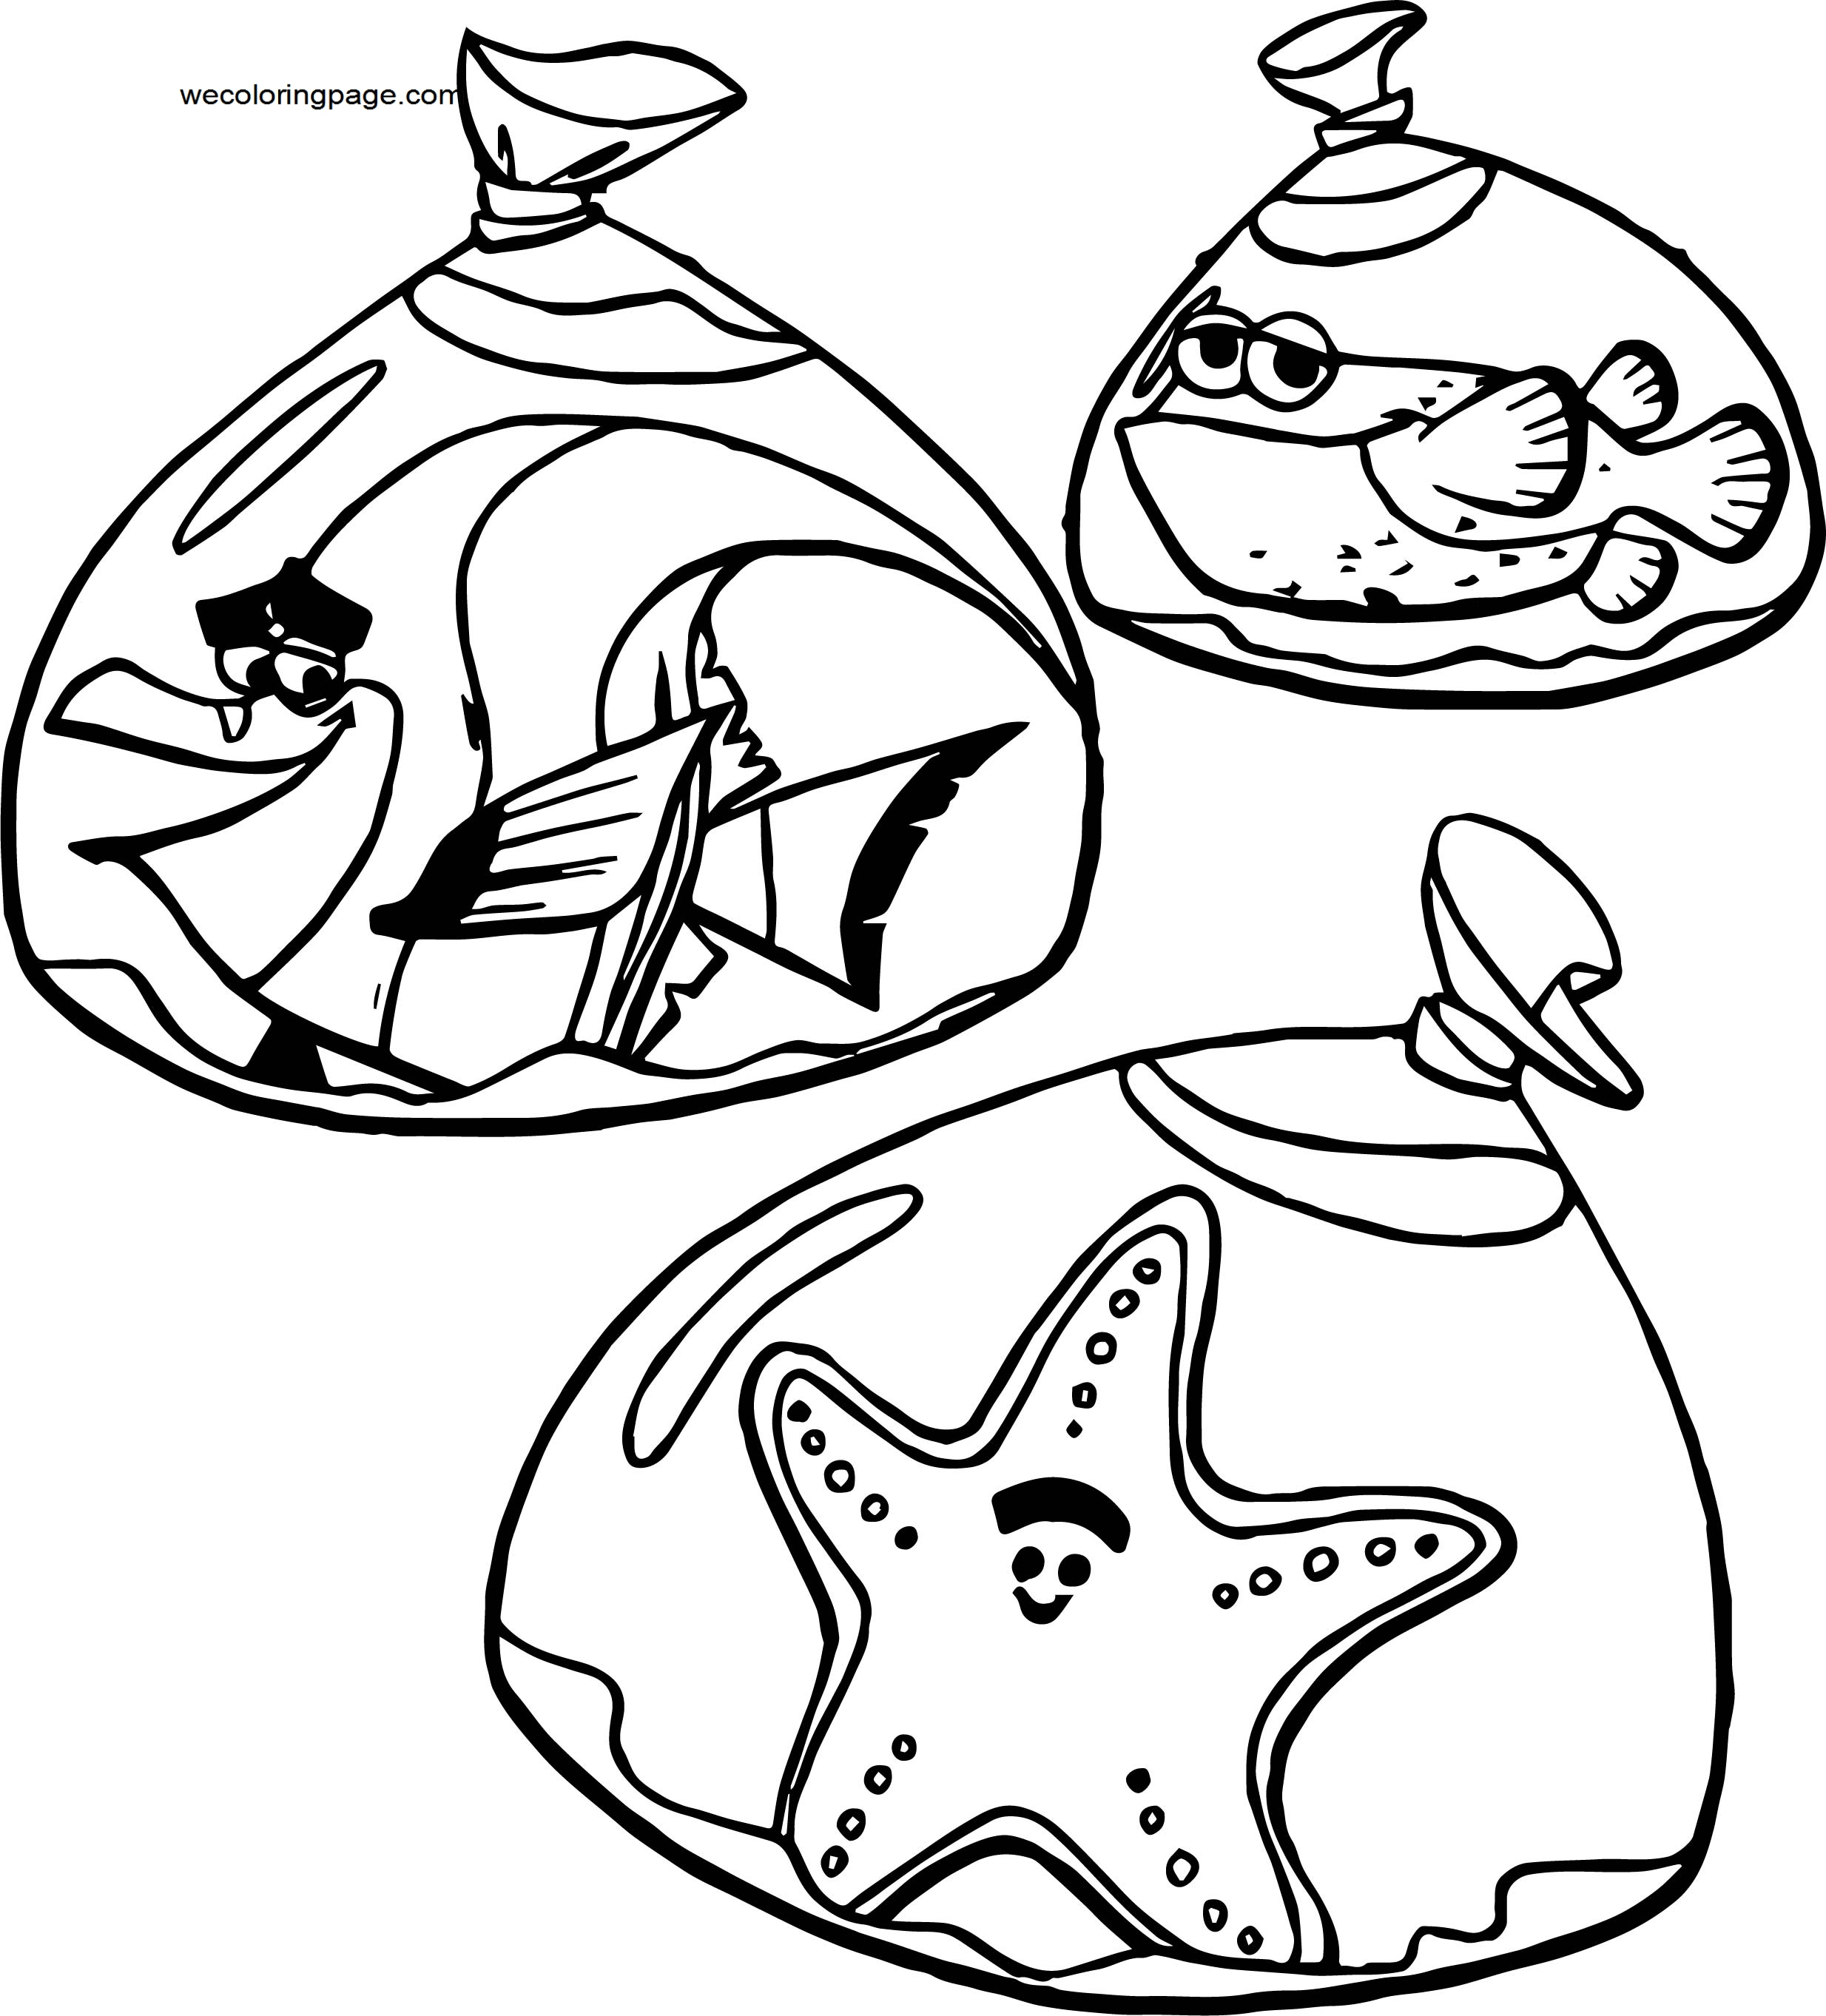 Disney Finding Nemopfg 16 Coloring Pages